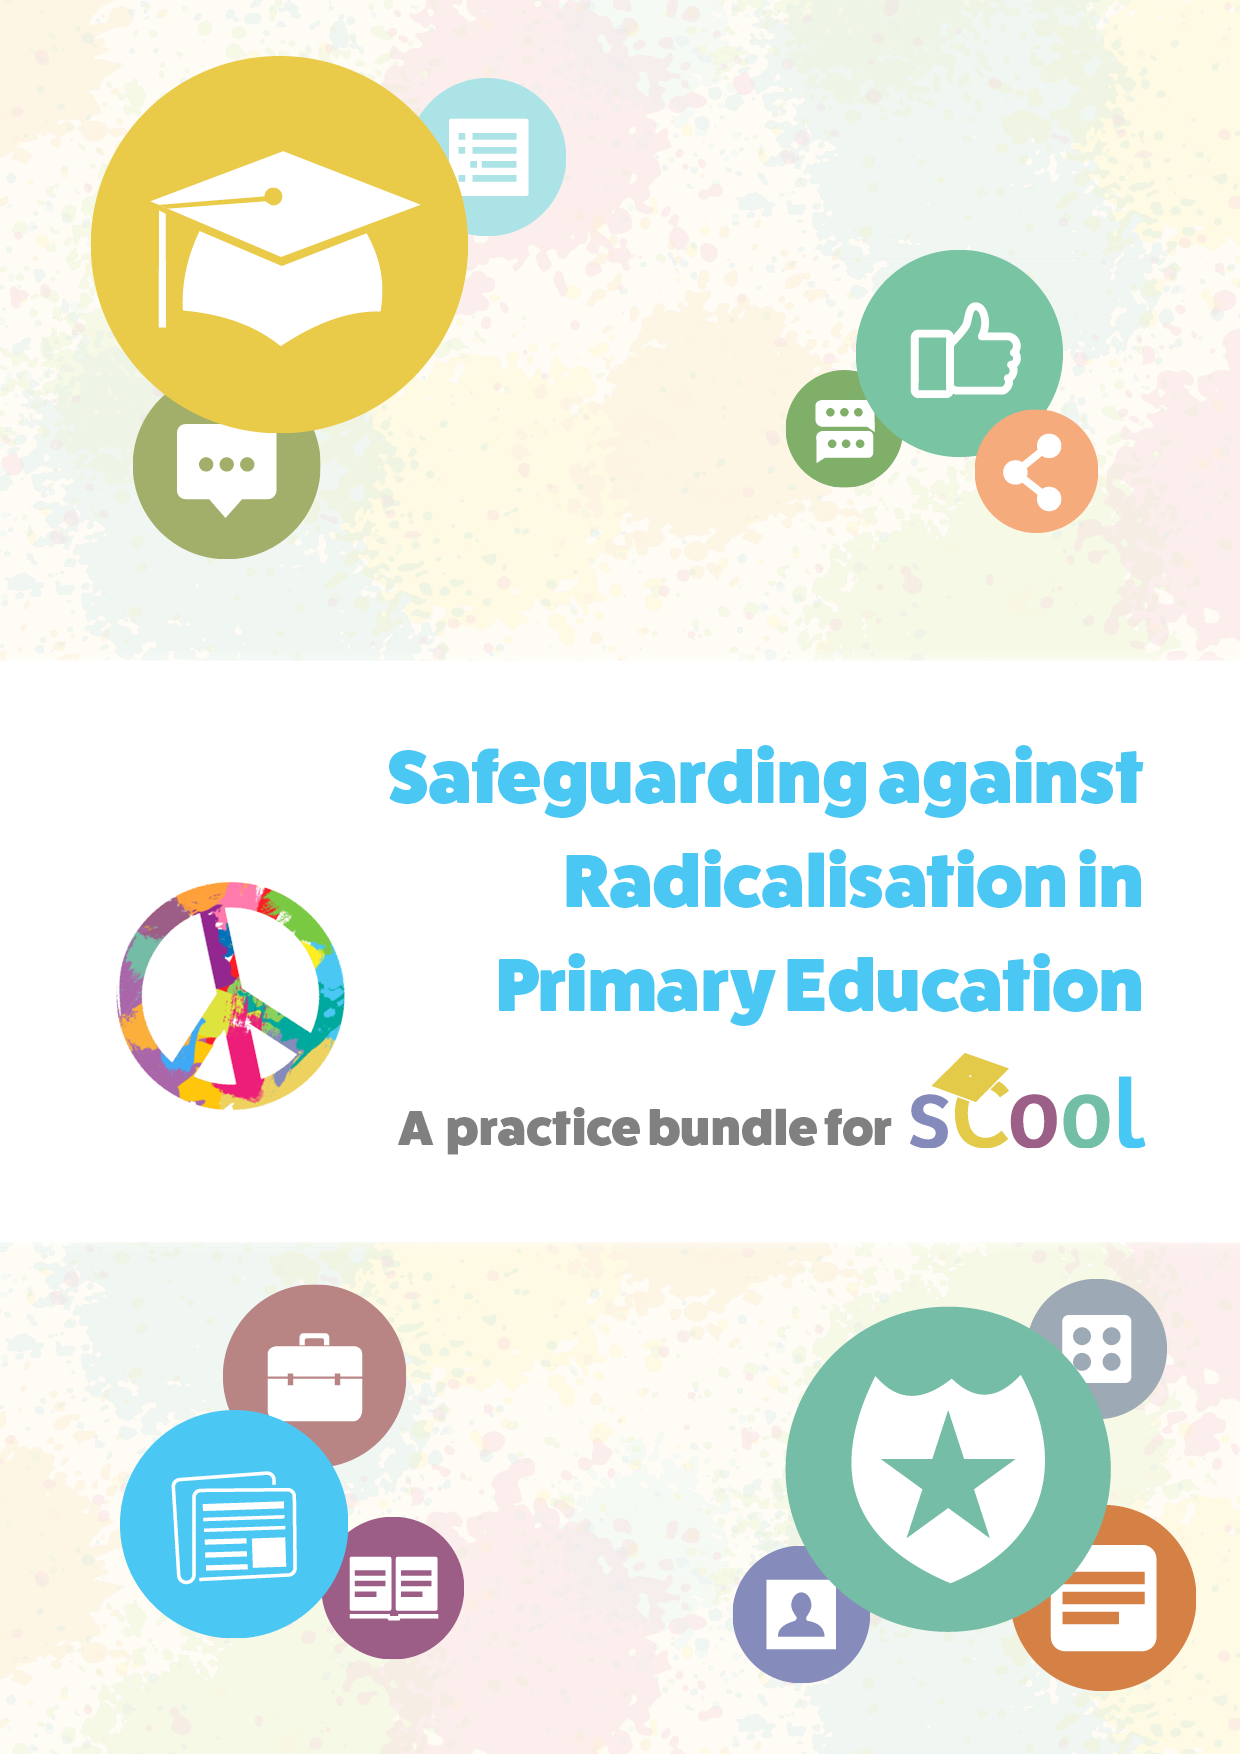 Practice%20Bundle%20Teachers%20guide%20to%20radicalisation%20-%20Web.png